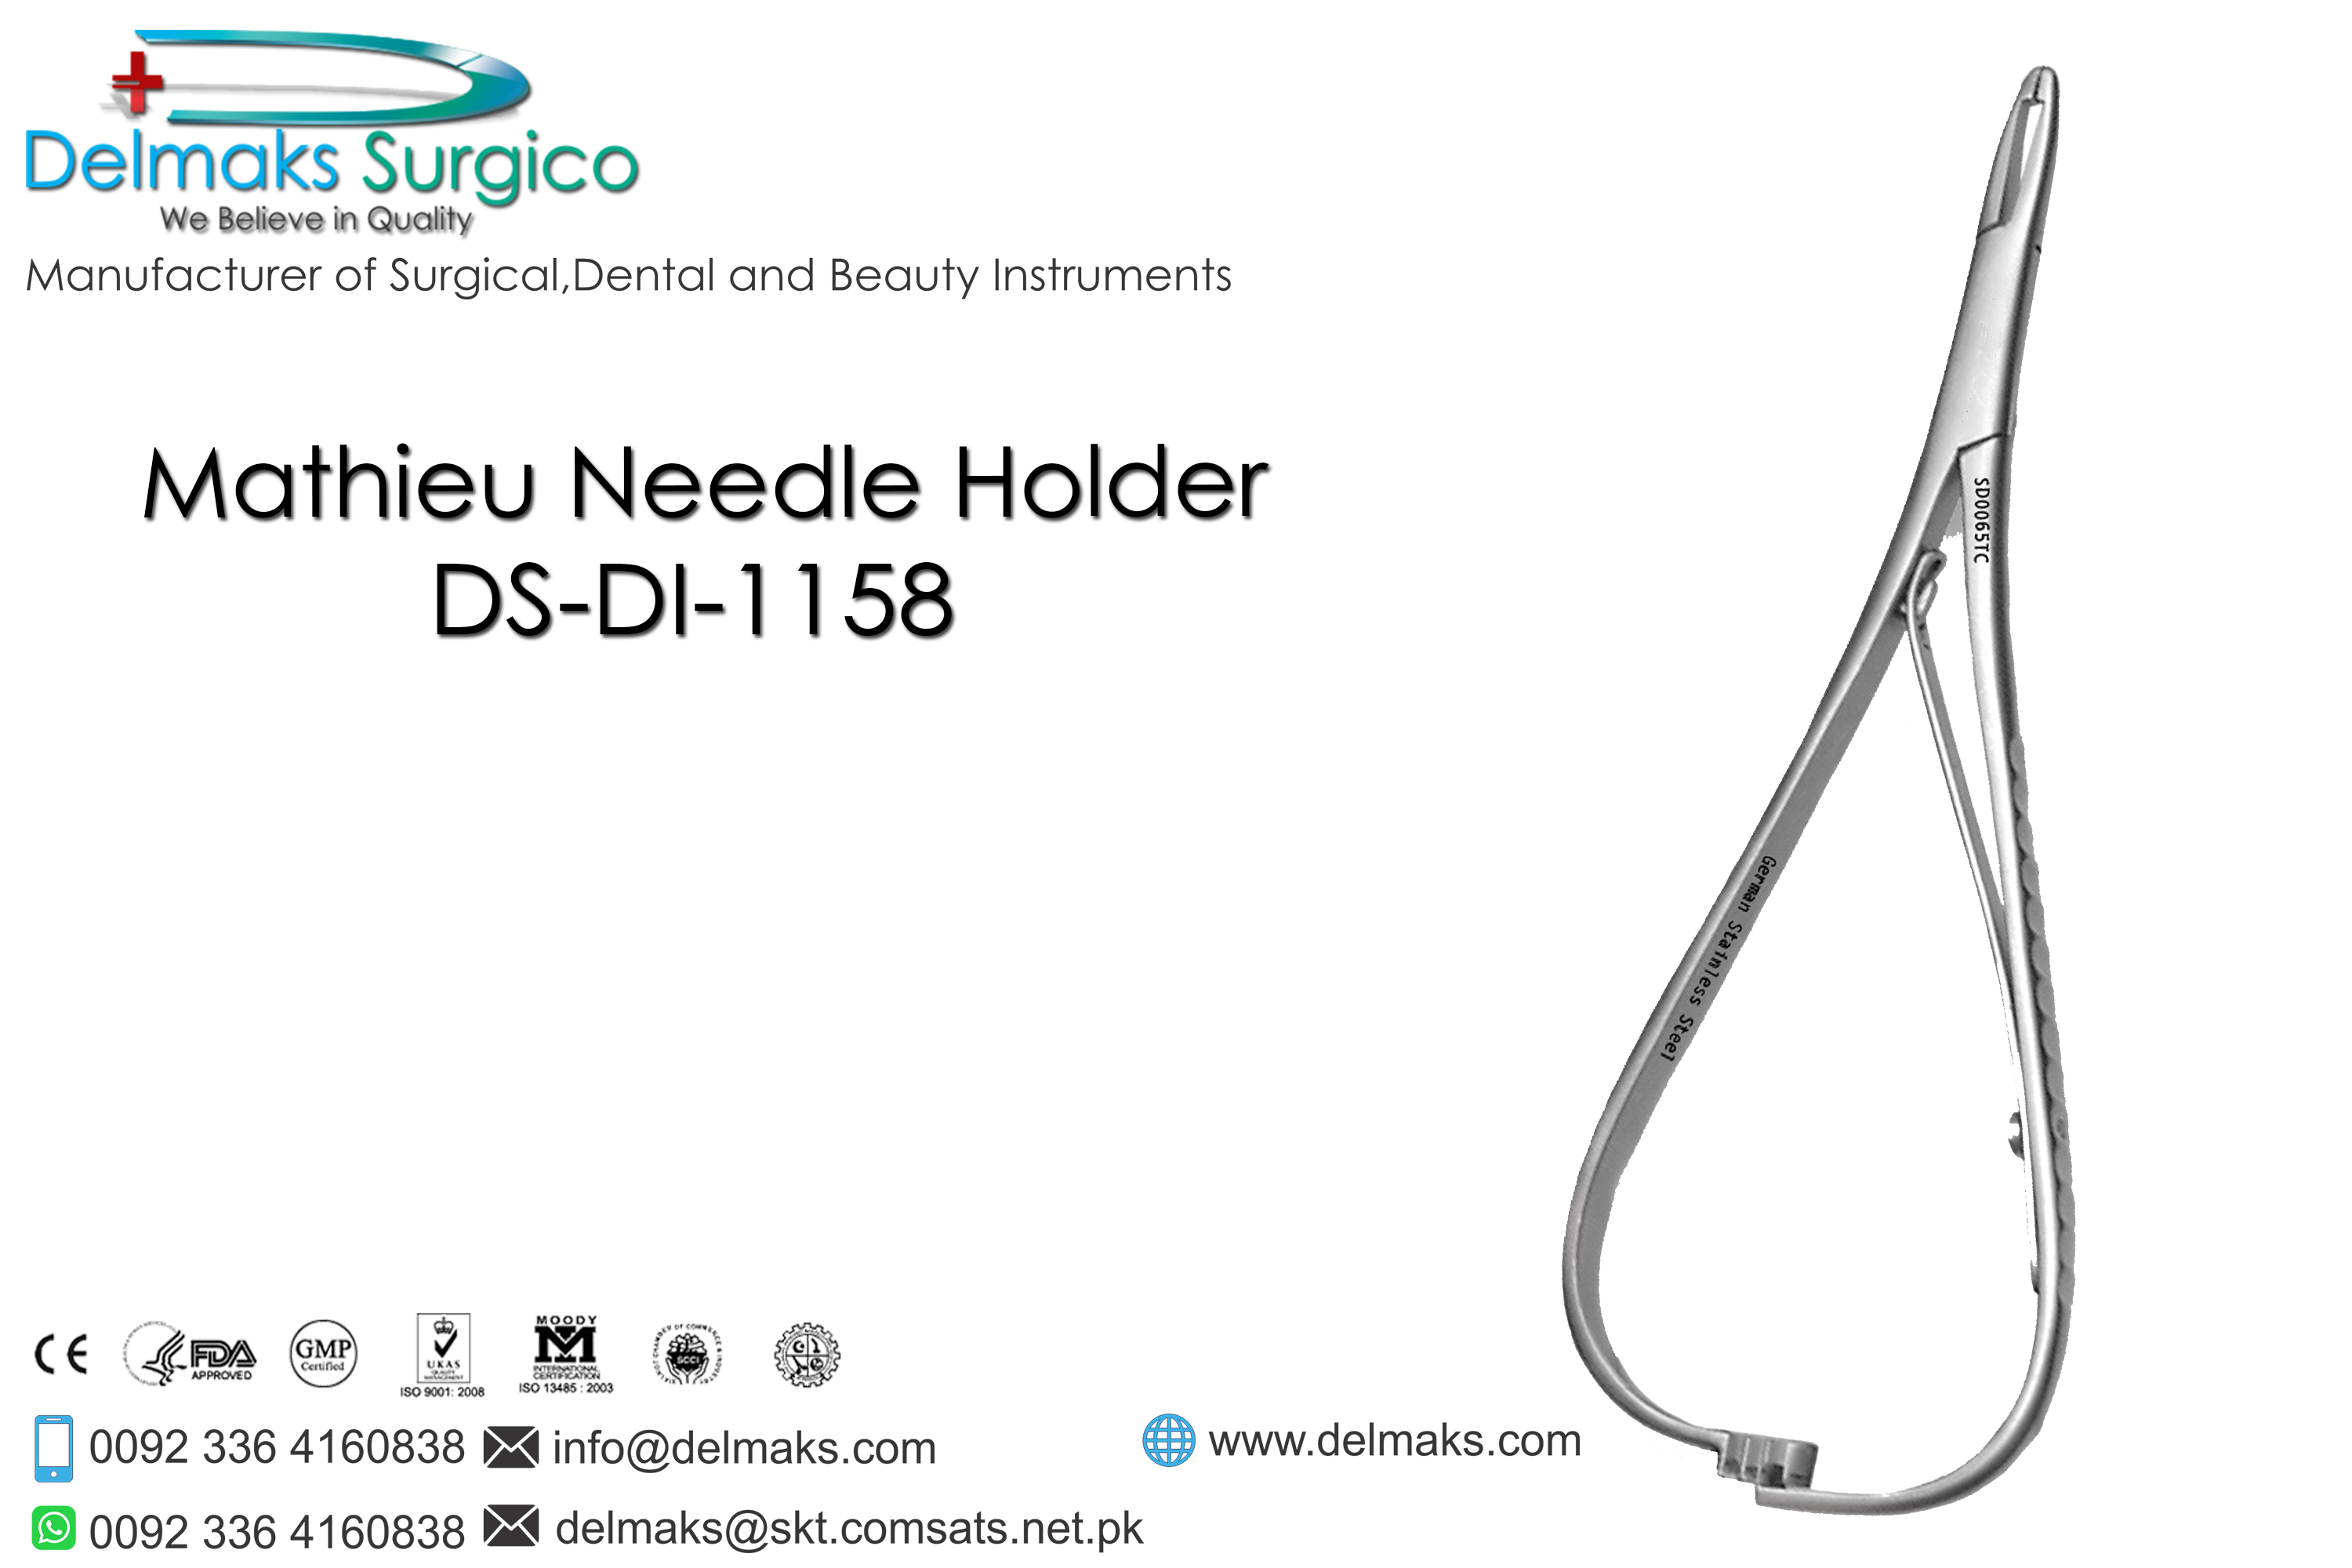 Mathieu Needle Holder-Needle Holders-Dental Instruments-Delmaks Surgico